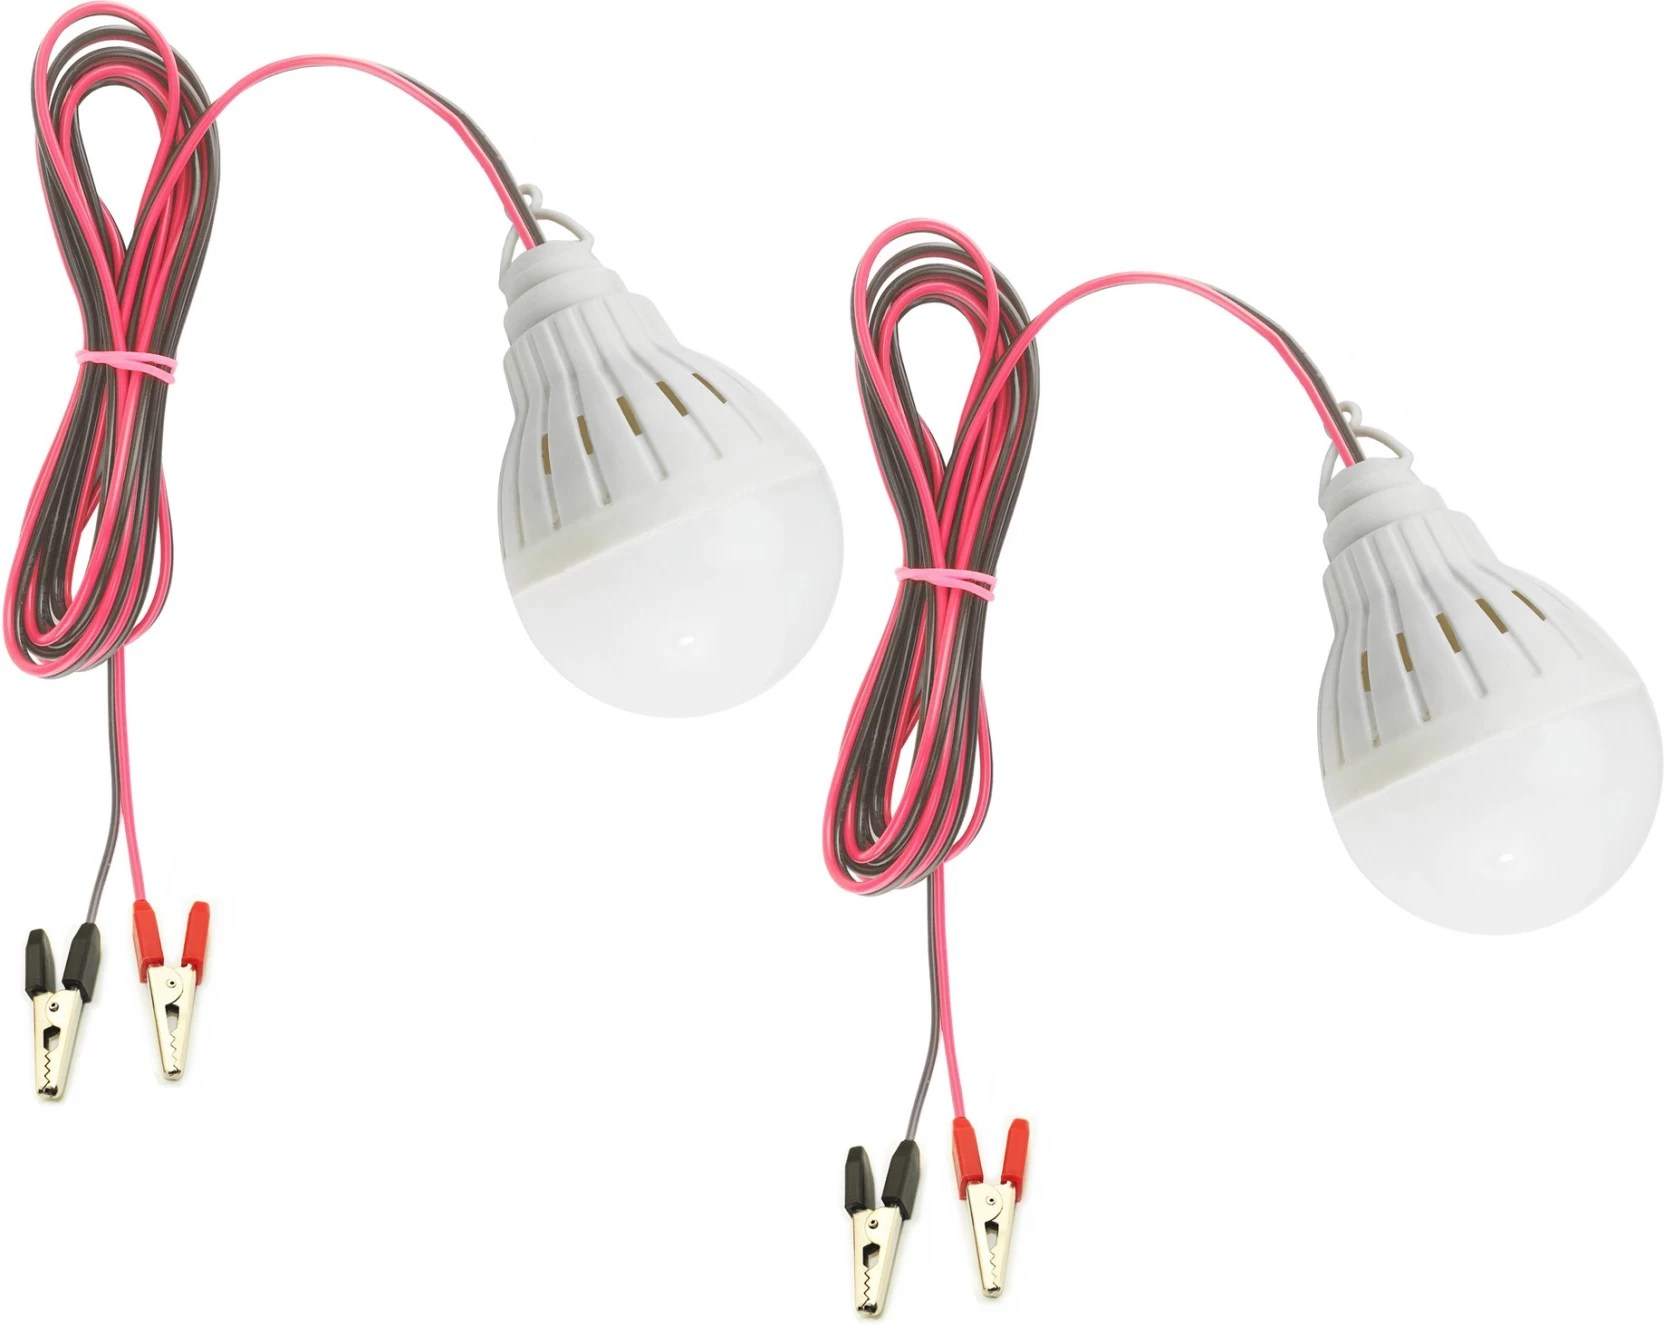 small resolution of nasa tech 12v 5watts dc solar led light high brightness bulb with 2mtr long wire and clips pack of 2 emergency light white